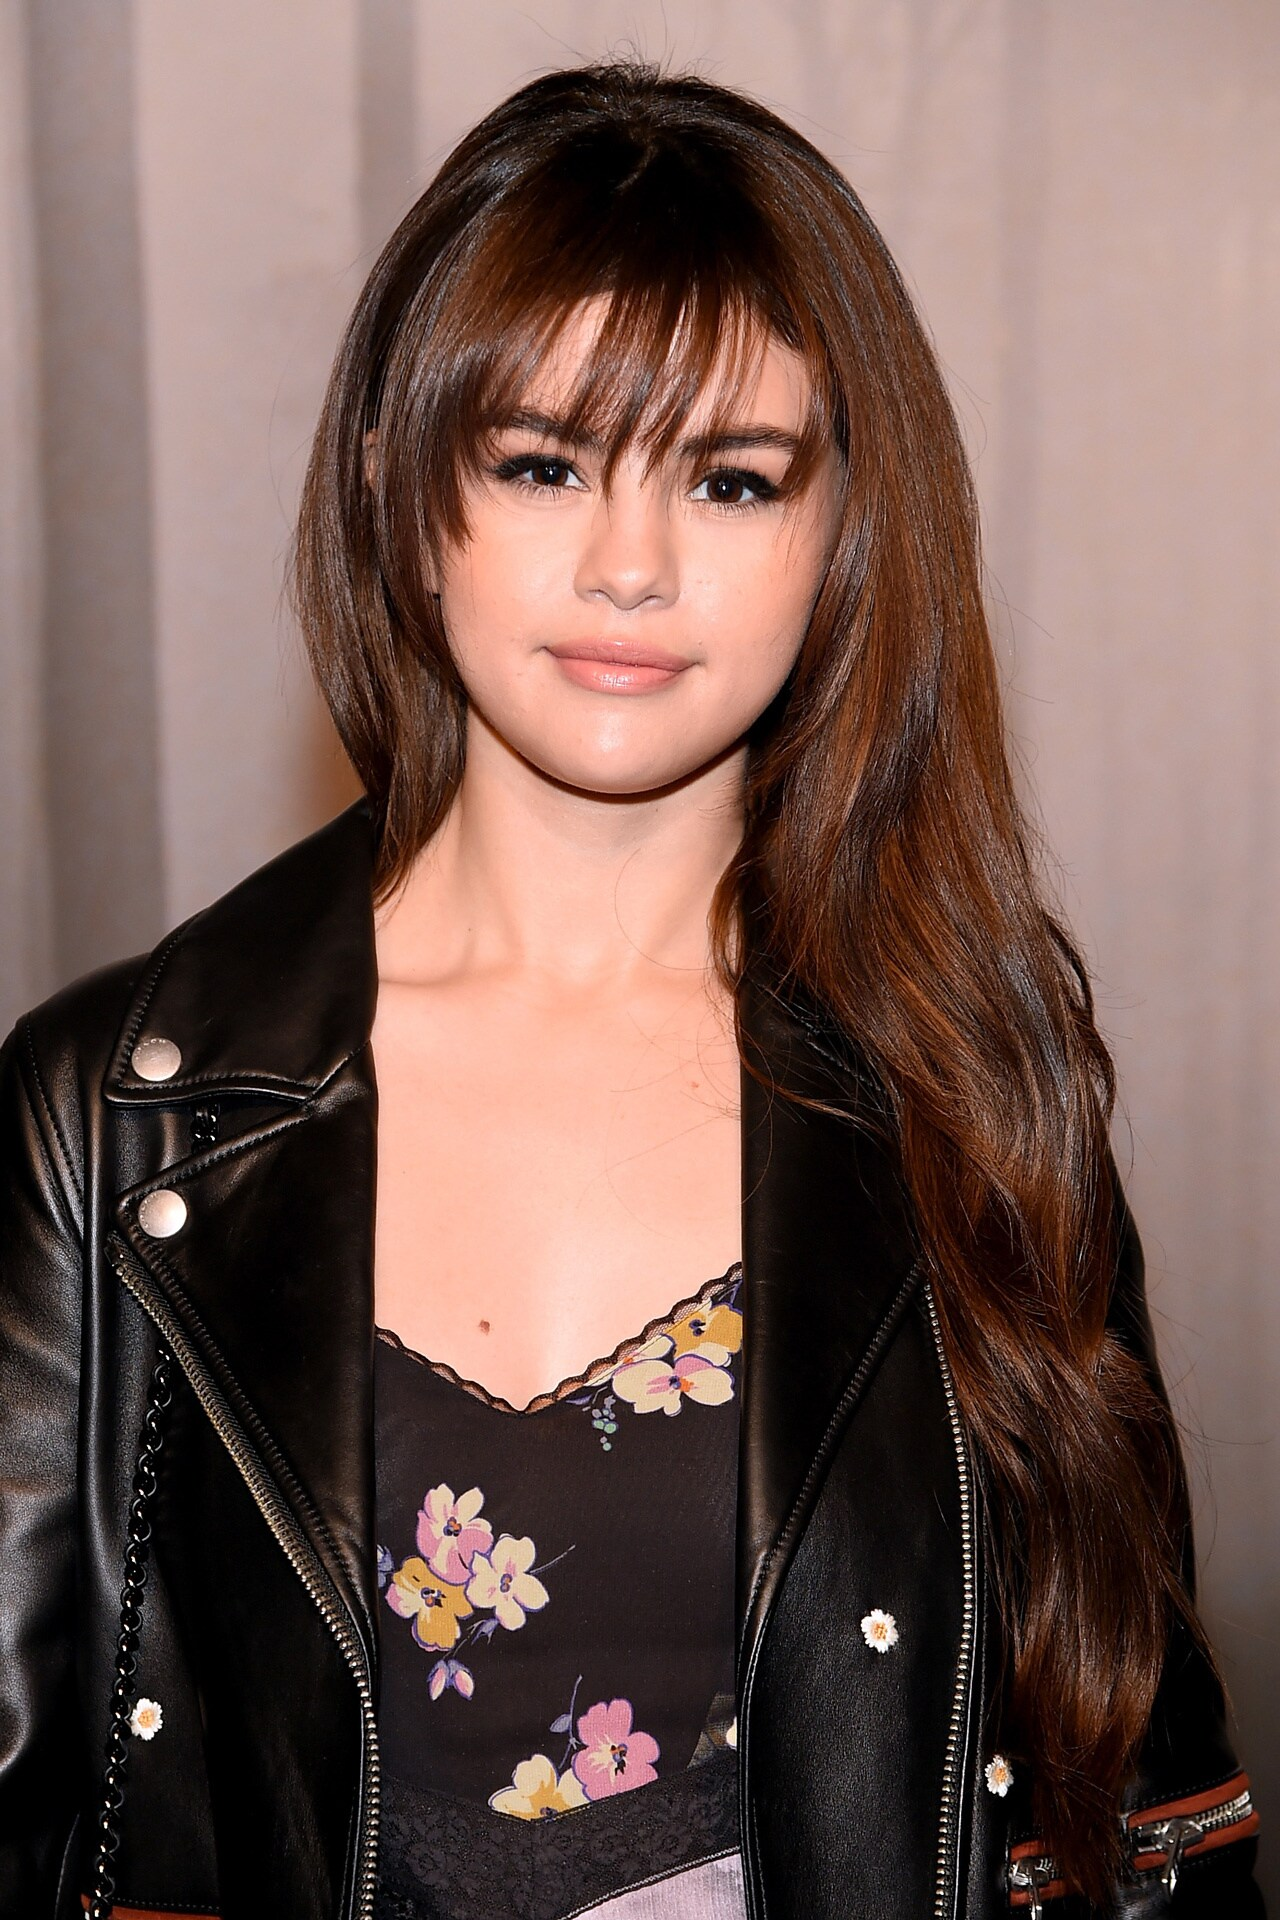 Selena Gomez at the Coach autumn/winter '18/'19 show. Image credit: Getty Images